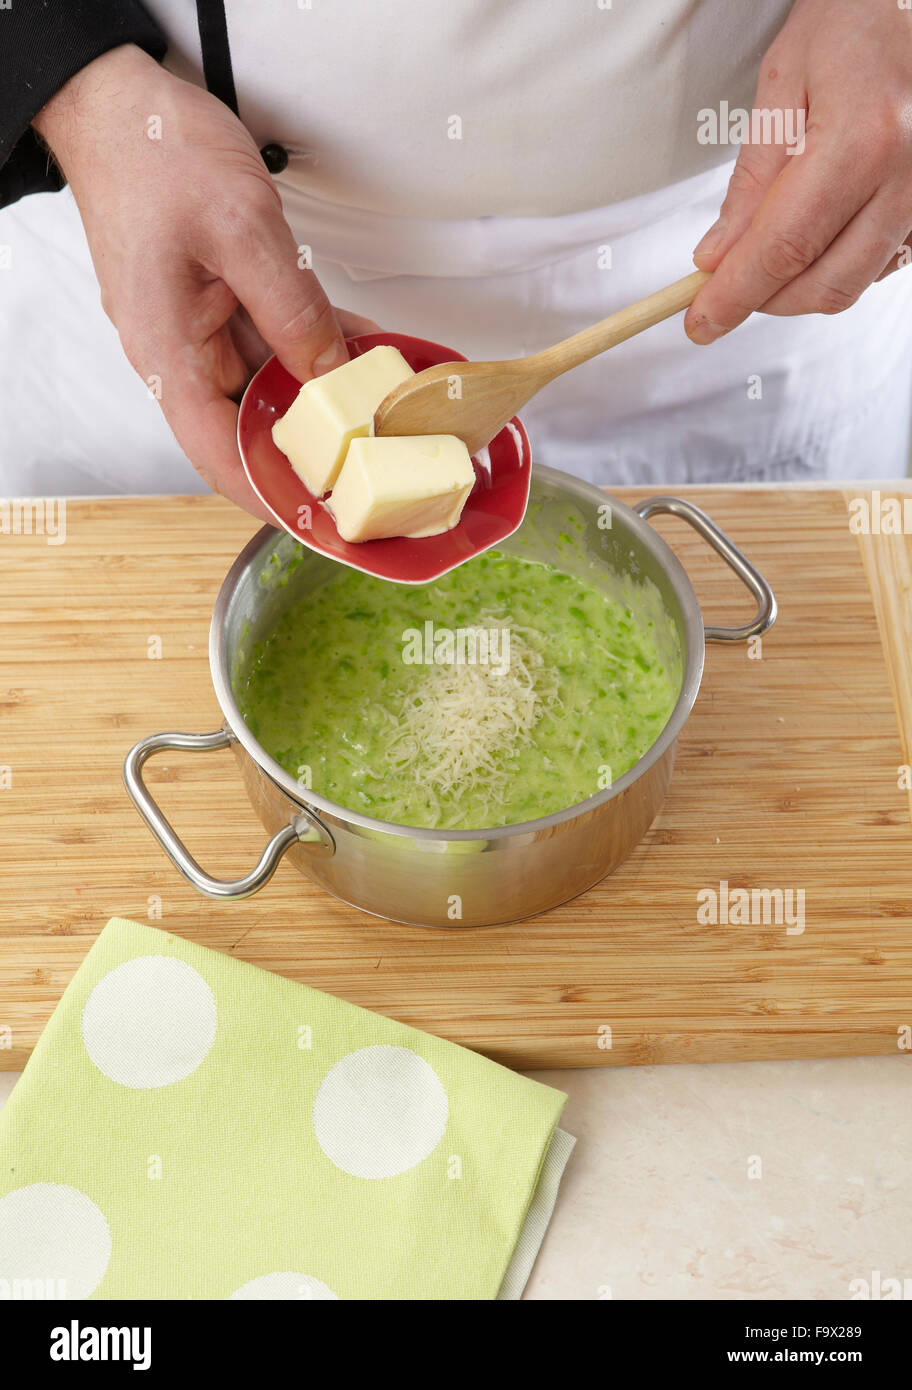 Pork cuts with pea mash + steps - Stock Image